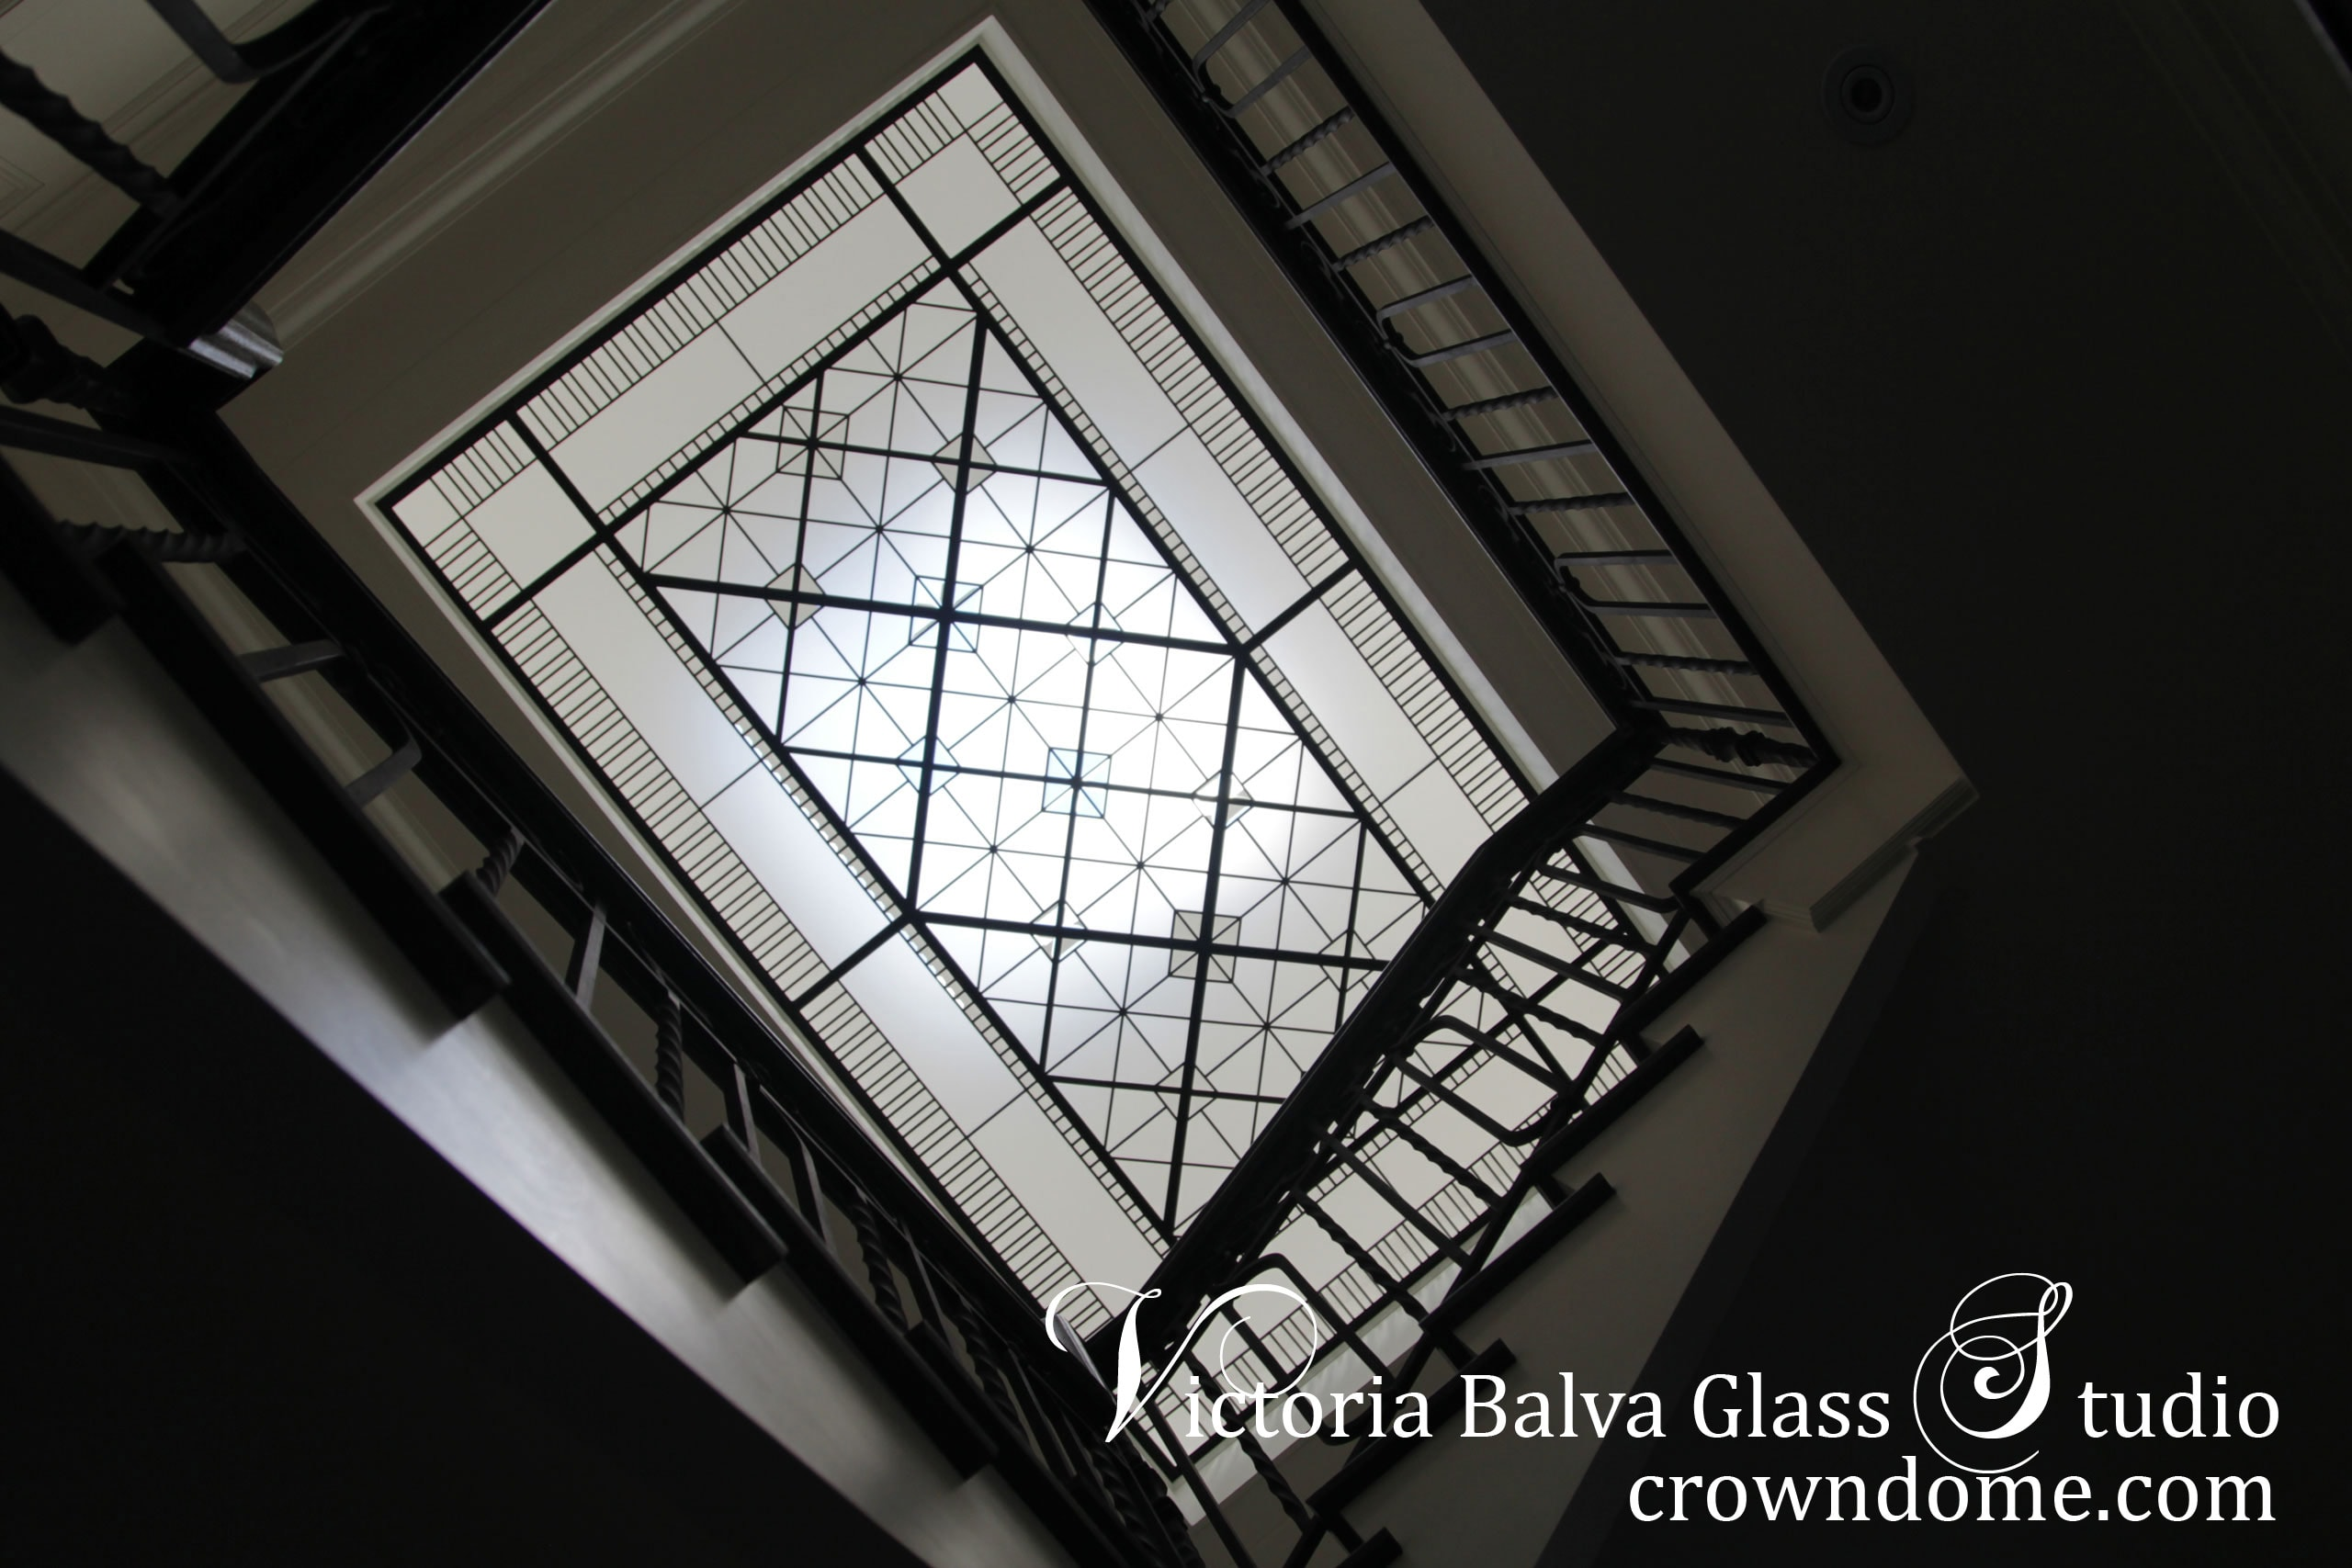 Large geometric leaded glass skylight ceiling York Mills in simple geometric style with clear textured glass and clear beveled glass for a stairwell of custom built residence in Toronto. Original design by glass artist Victoria Balva